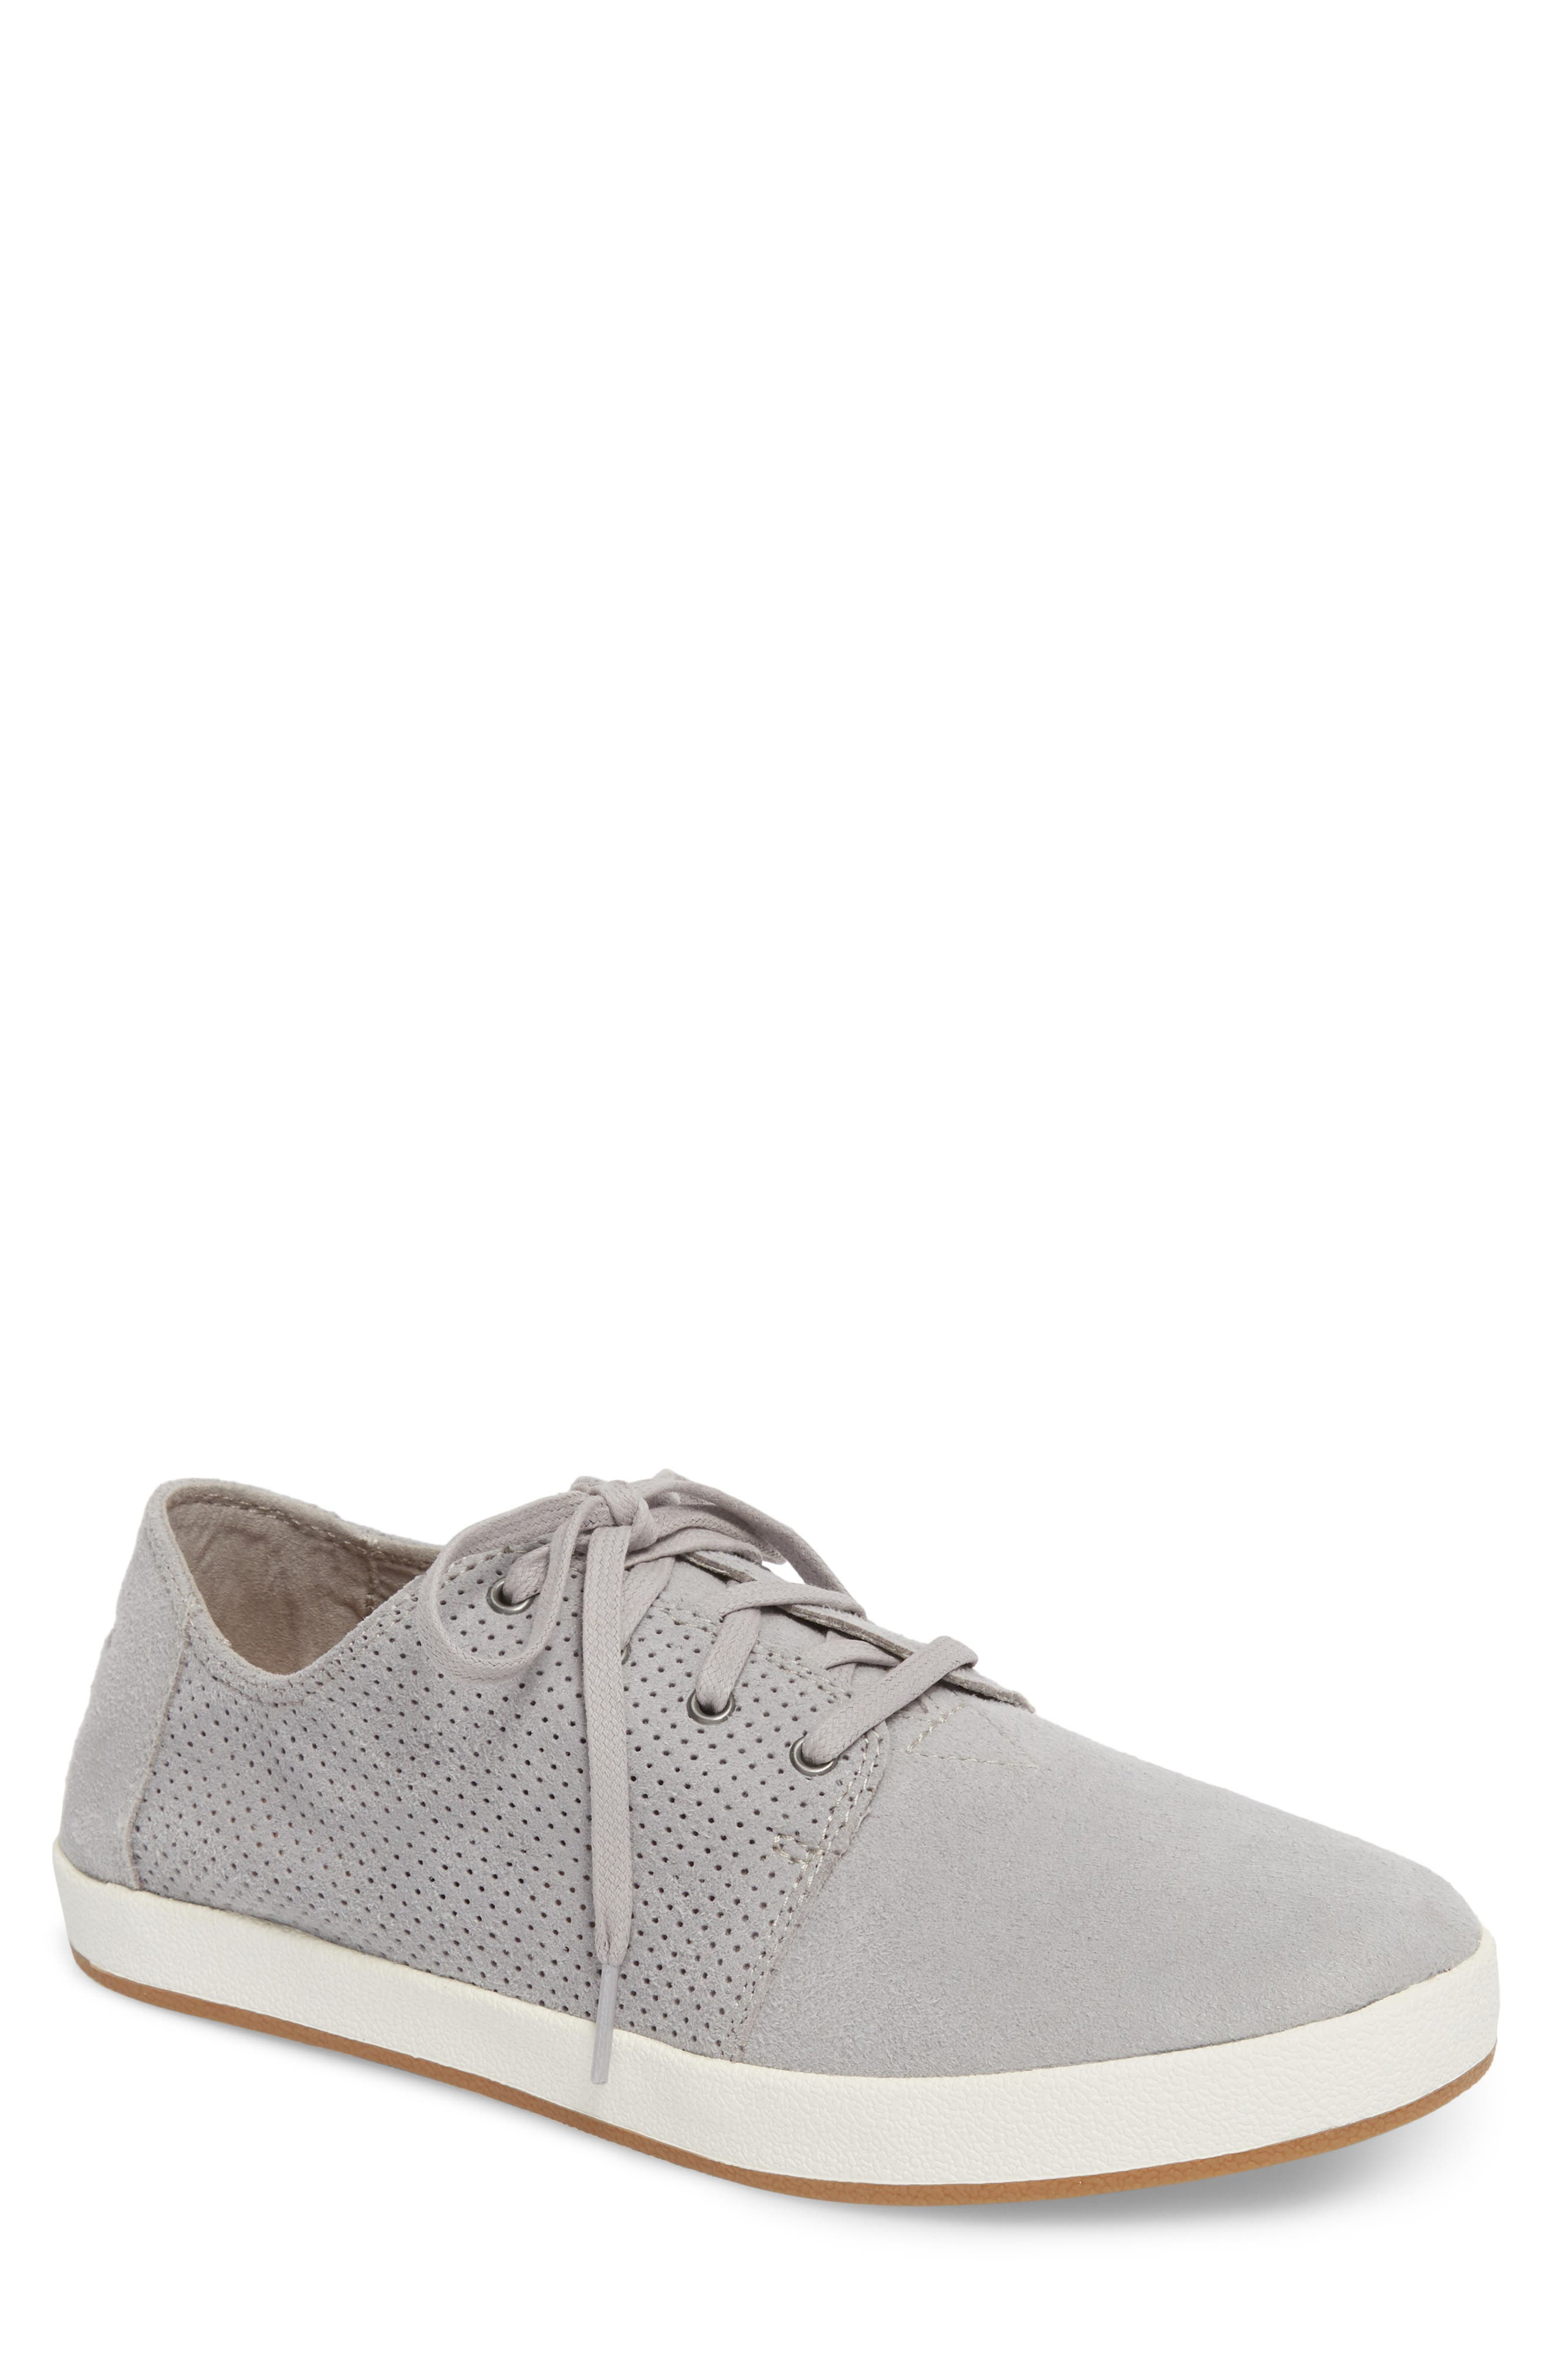 Payton Perforated Sneaker,                             Main thumbnail 1, color,                             DRIZZLE GREY PERFORATED